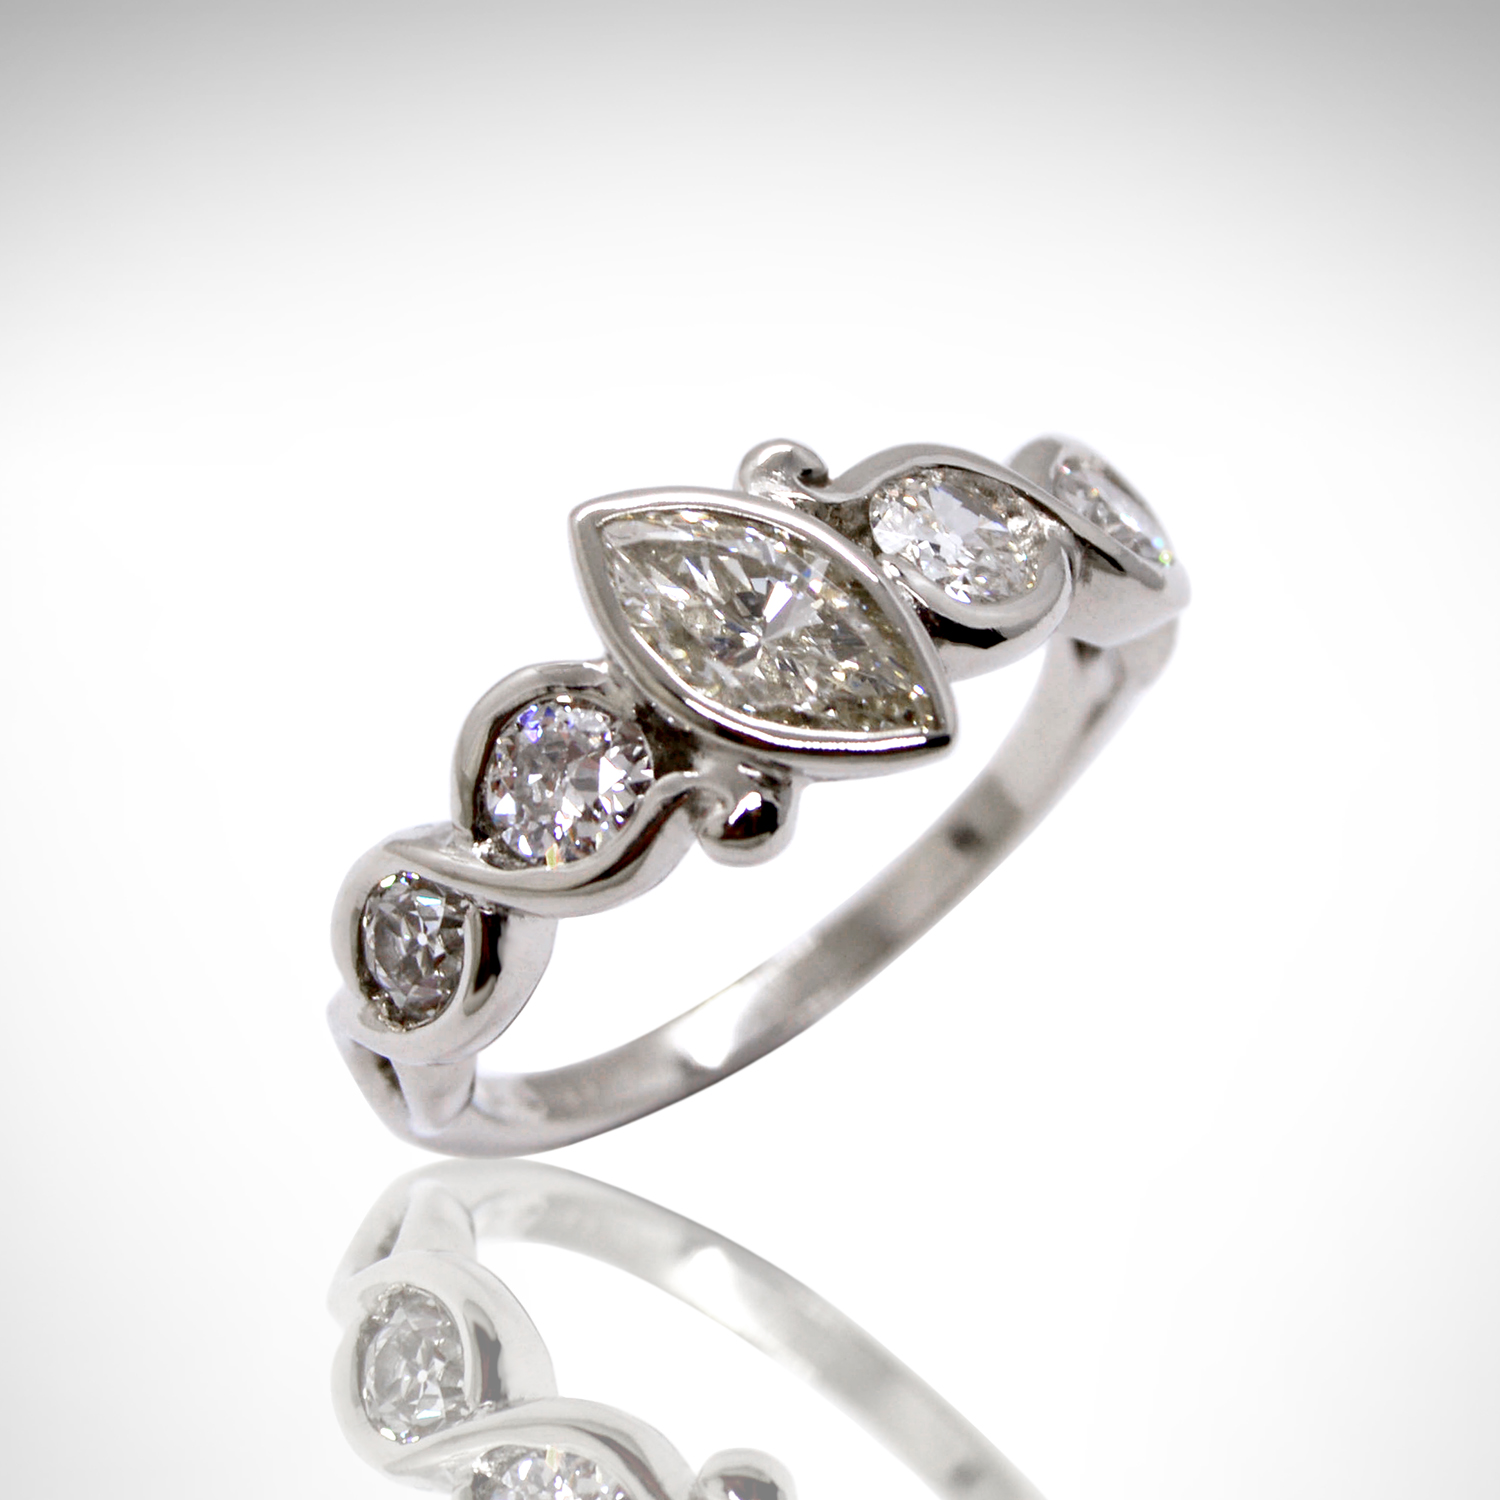 14K white gold ring with marquise center stone and round side stones in a twisted design with bezel setting